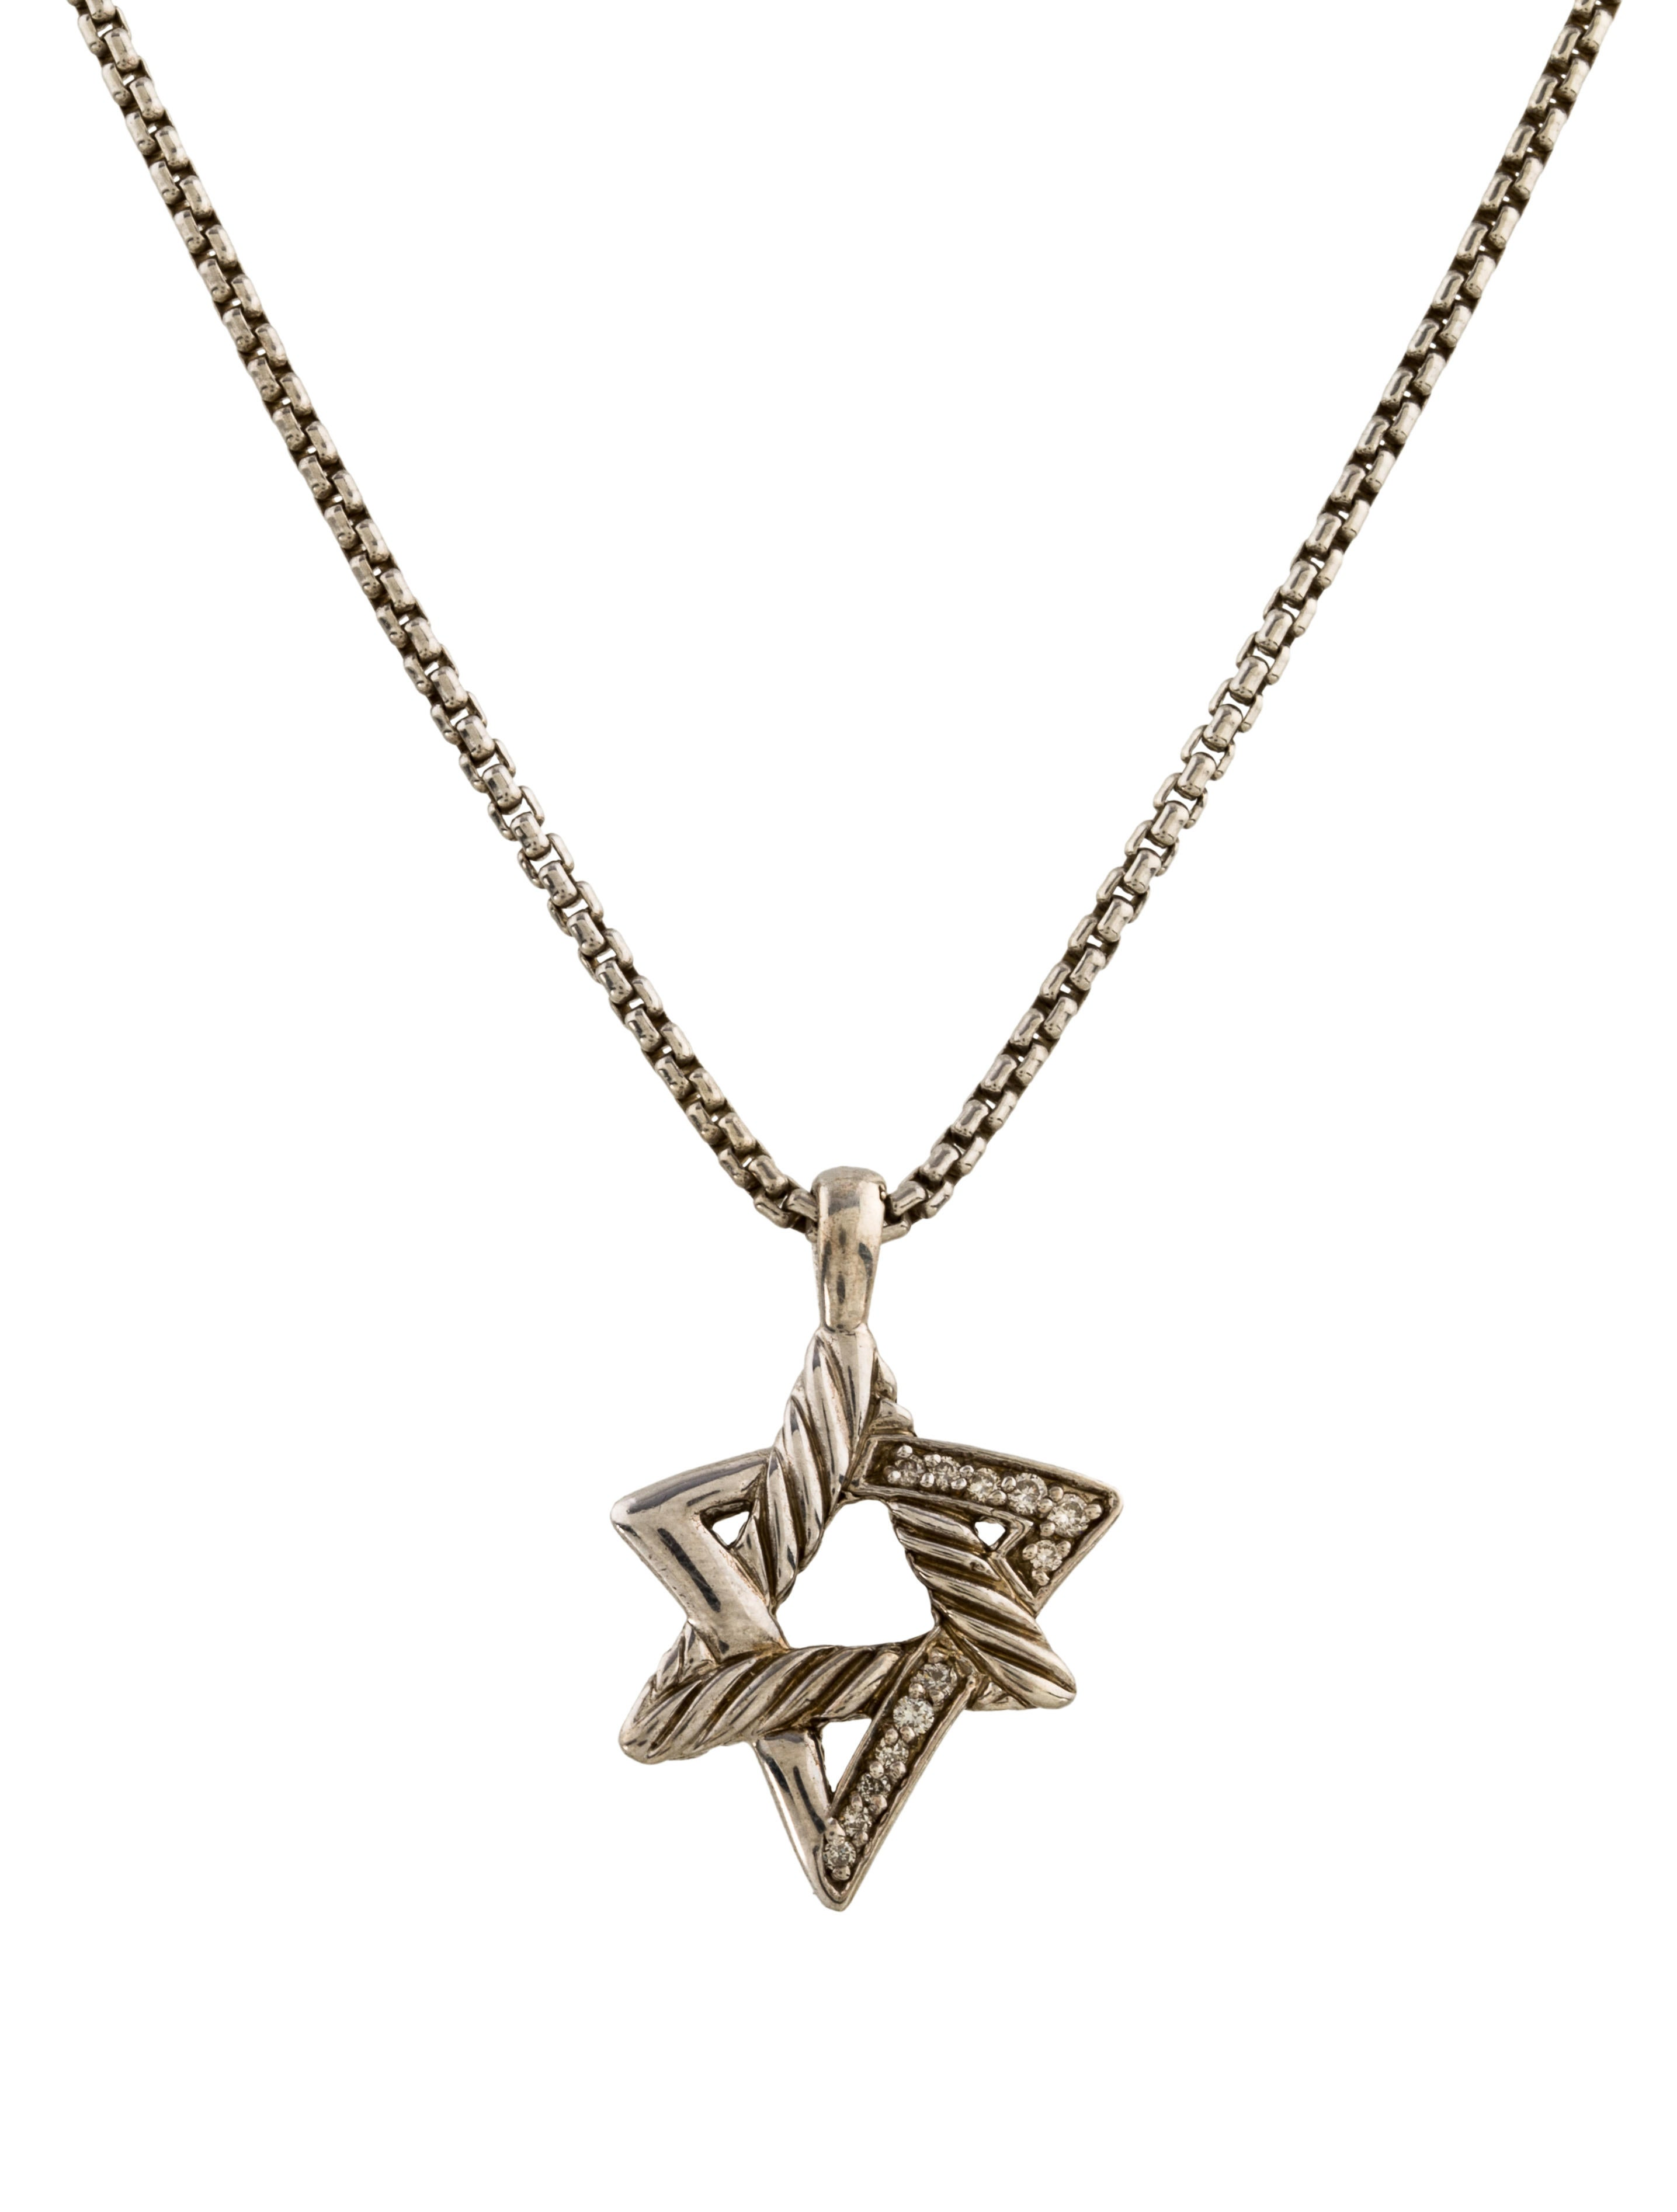 David yurman diamond star of david pendant necklace for Star of david necklace mens jewelry